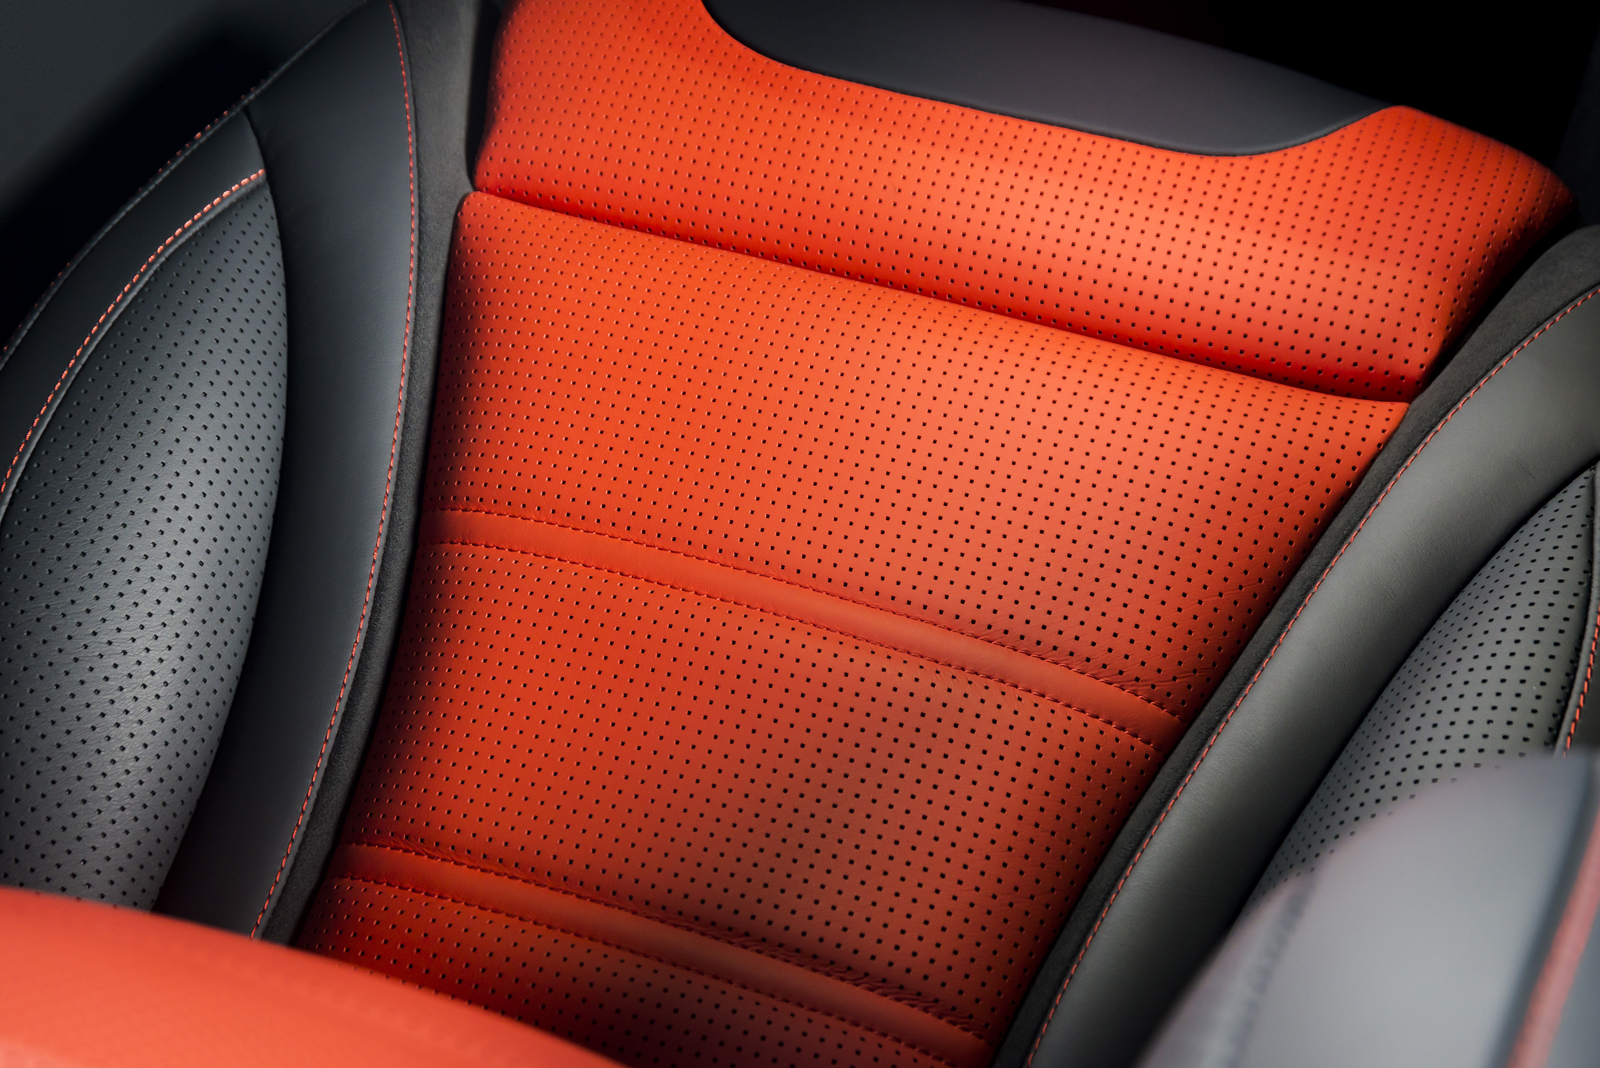 Leather is the most easily customized interior choice